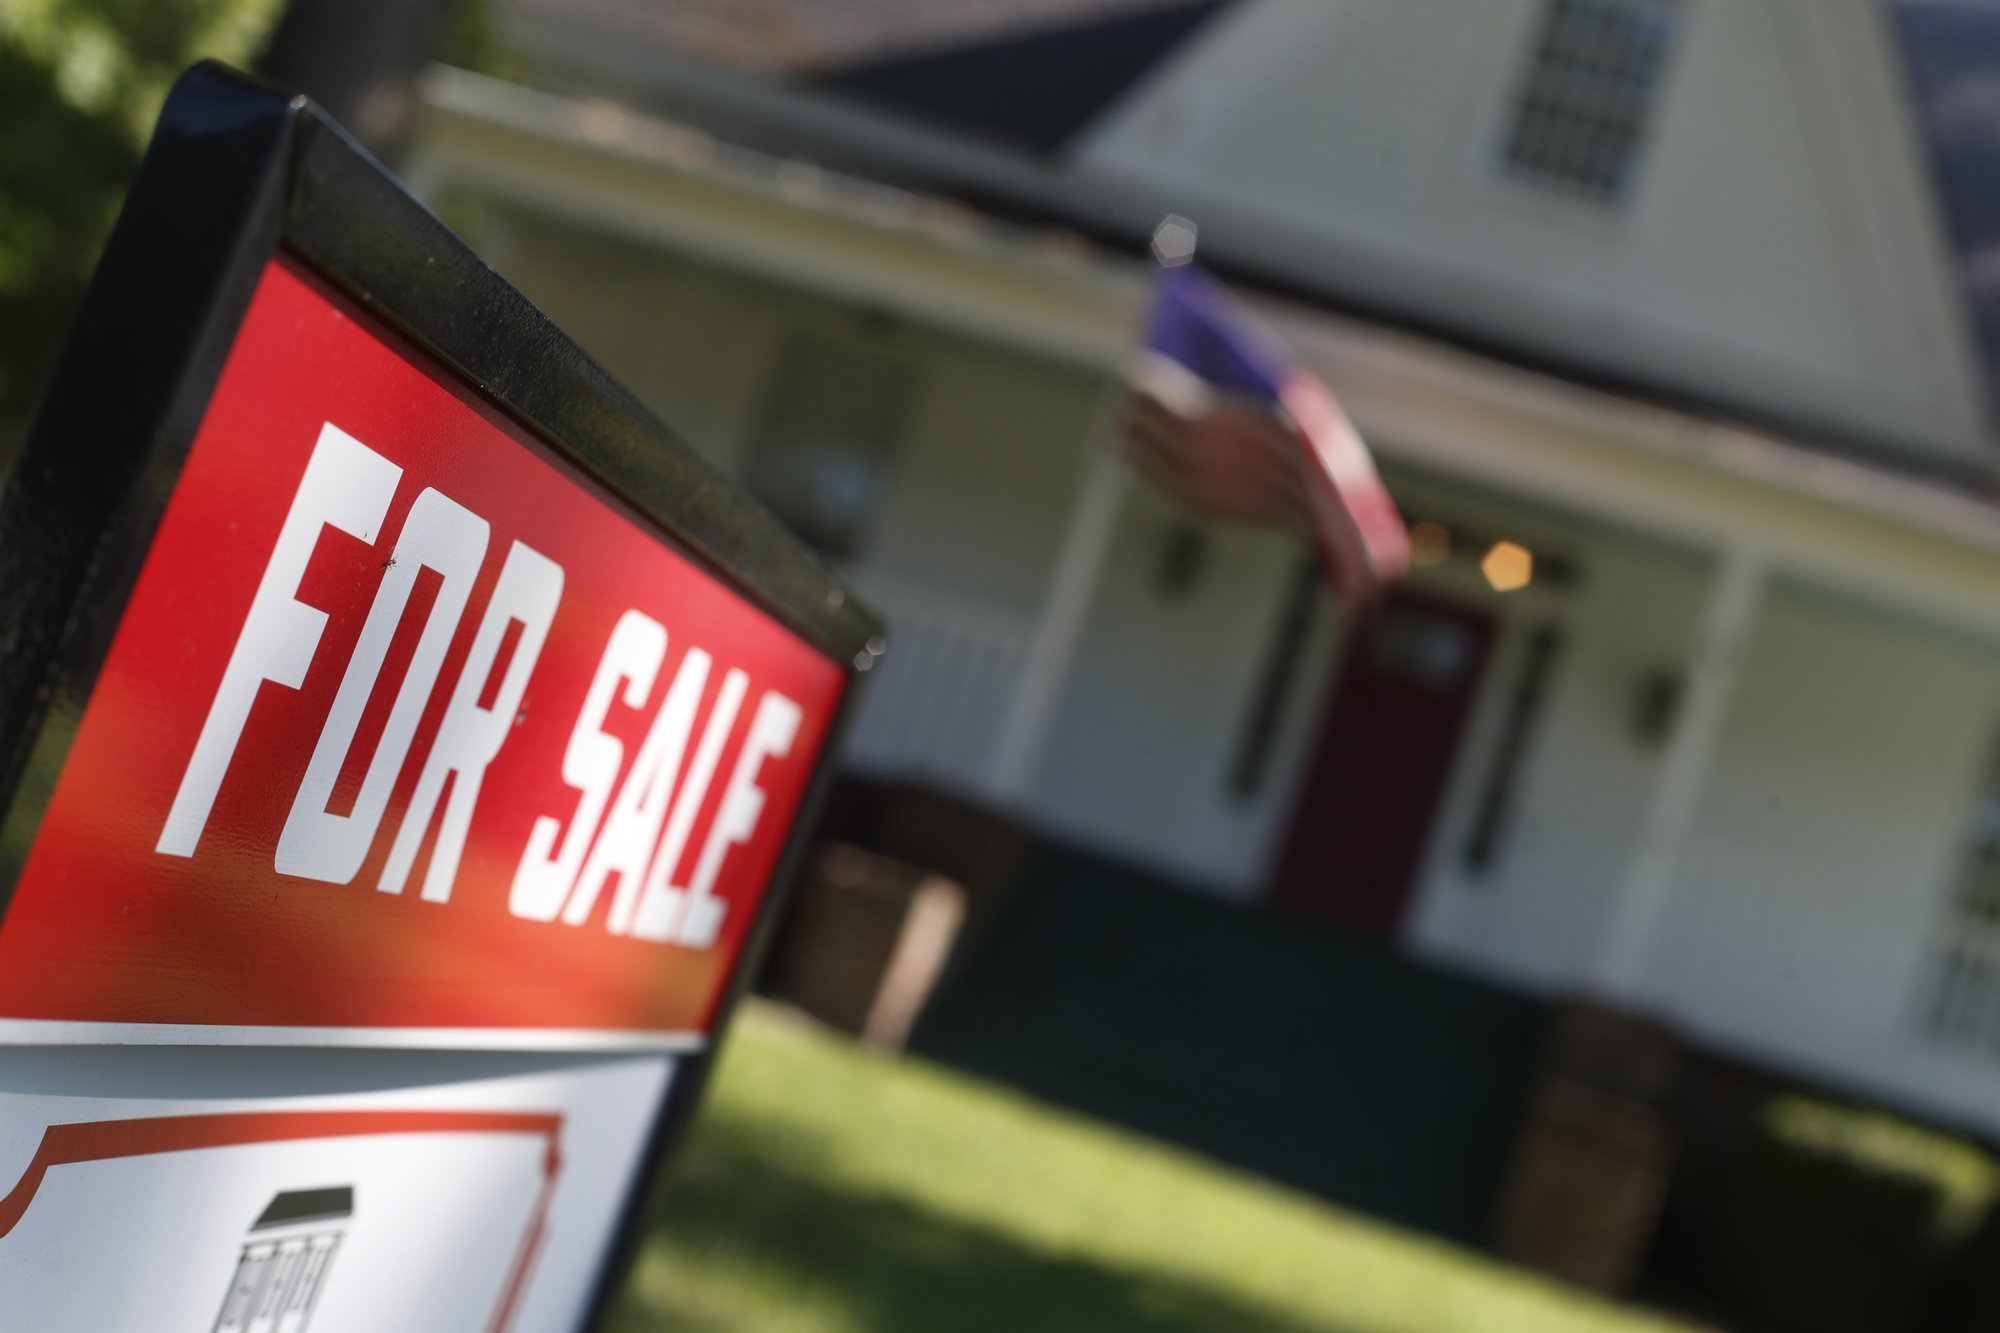 US Long-Term Mortgage Rates Rise; 30-Year Loan at 3.73%